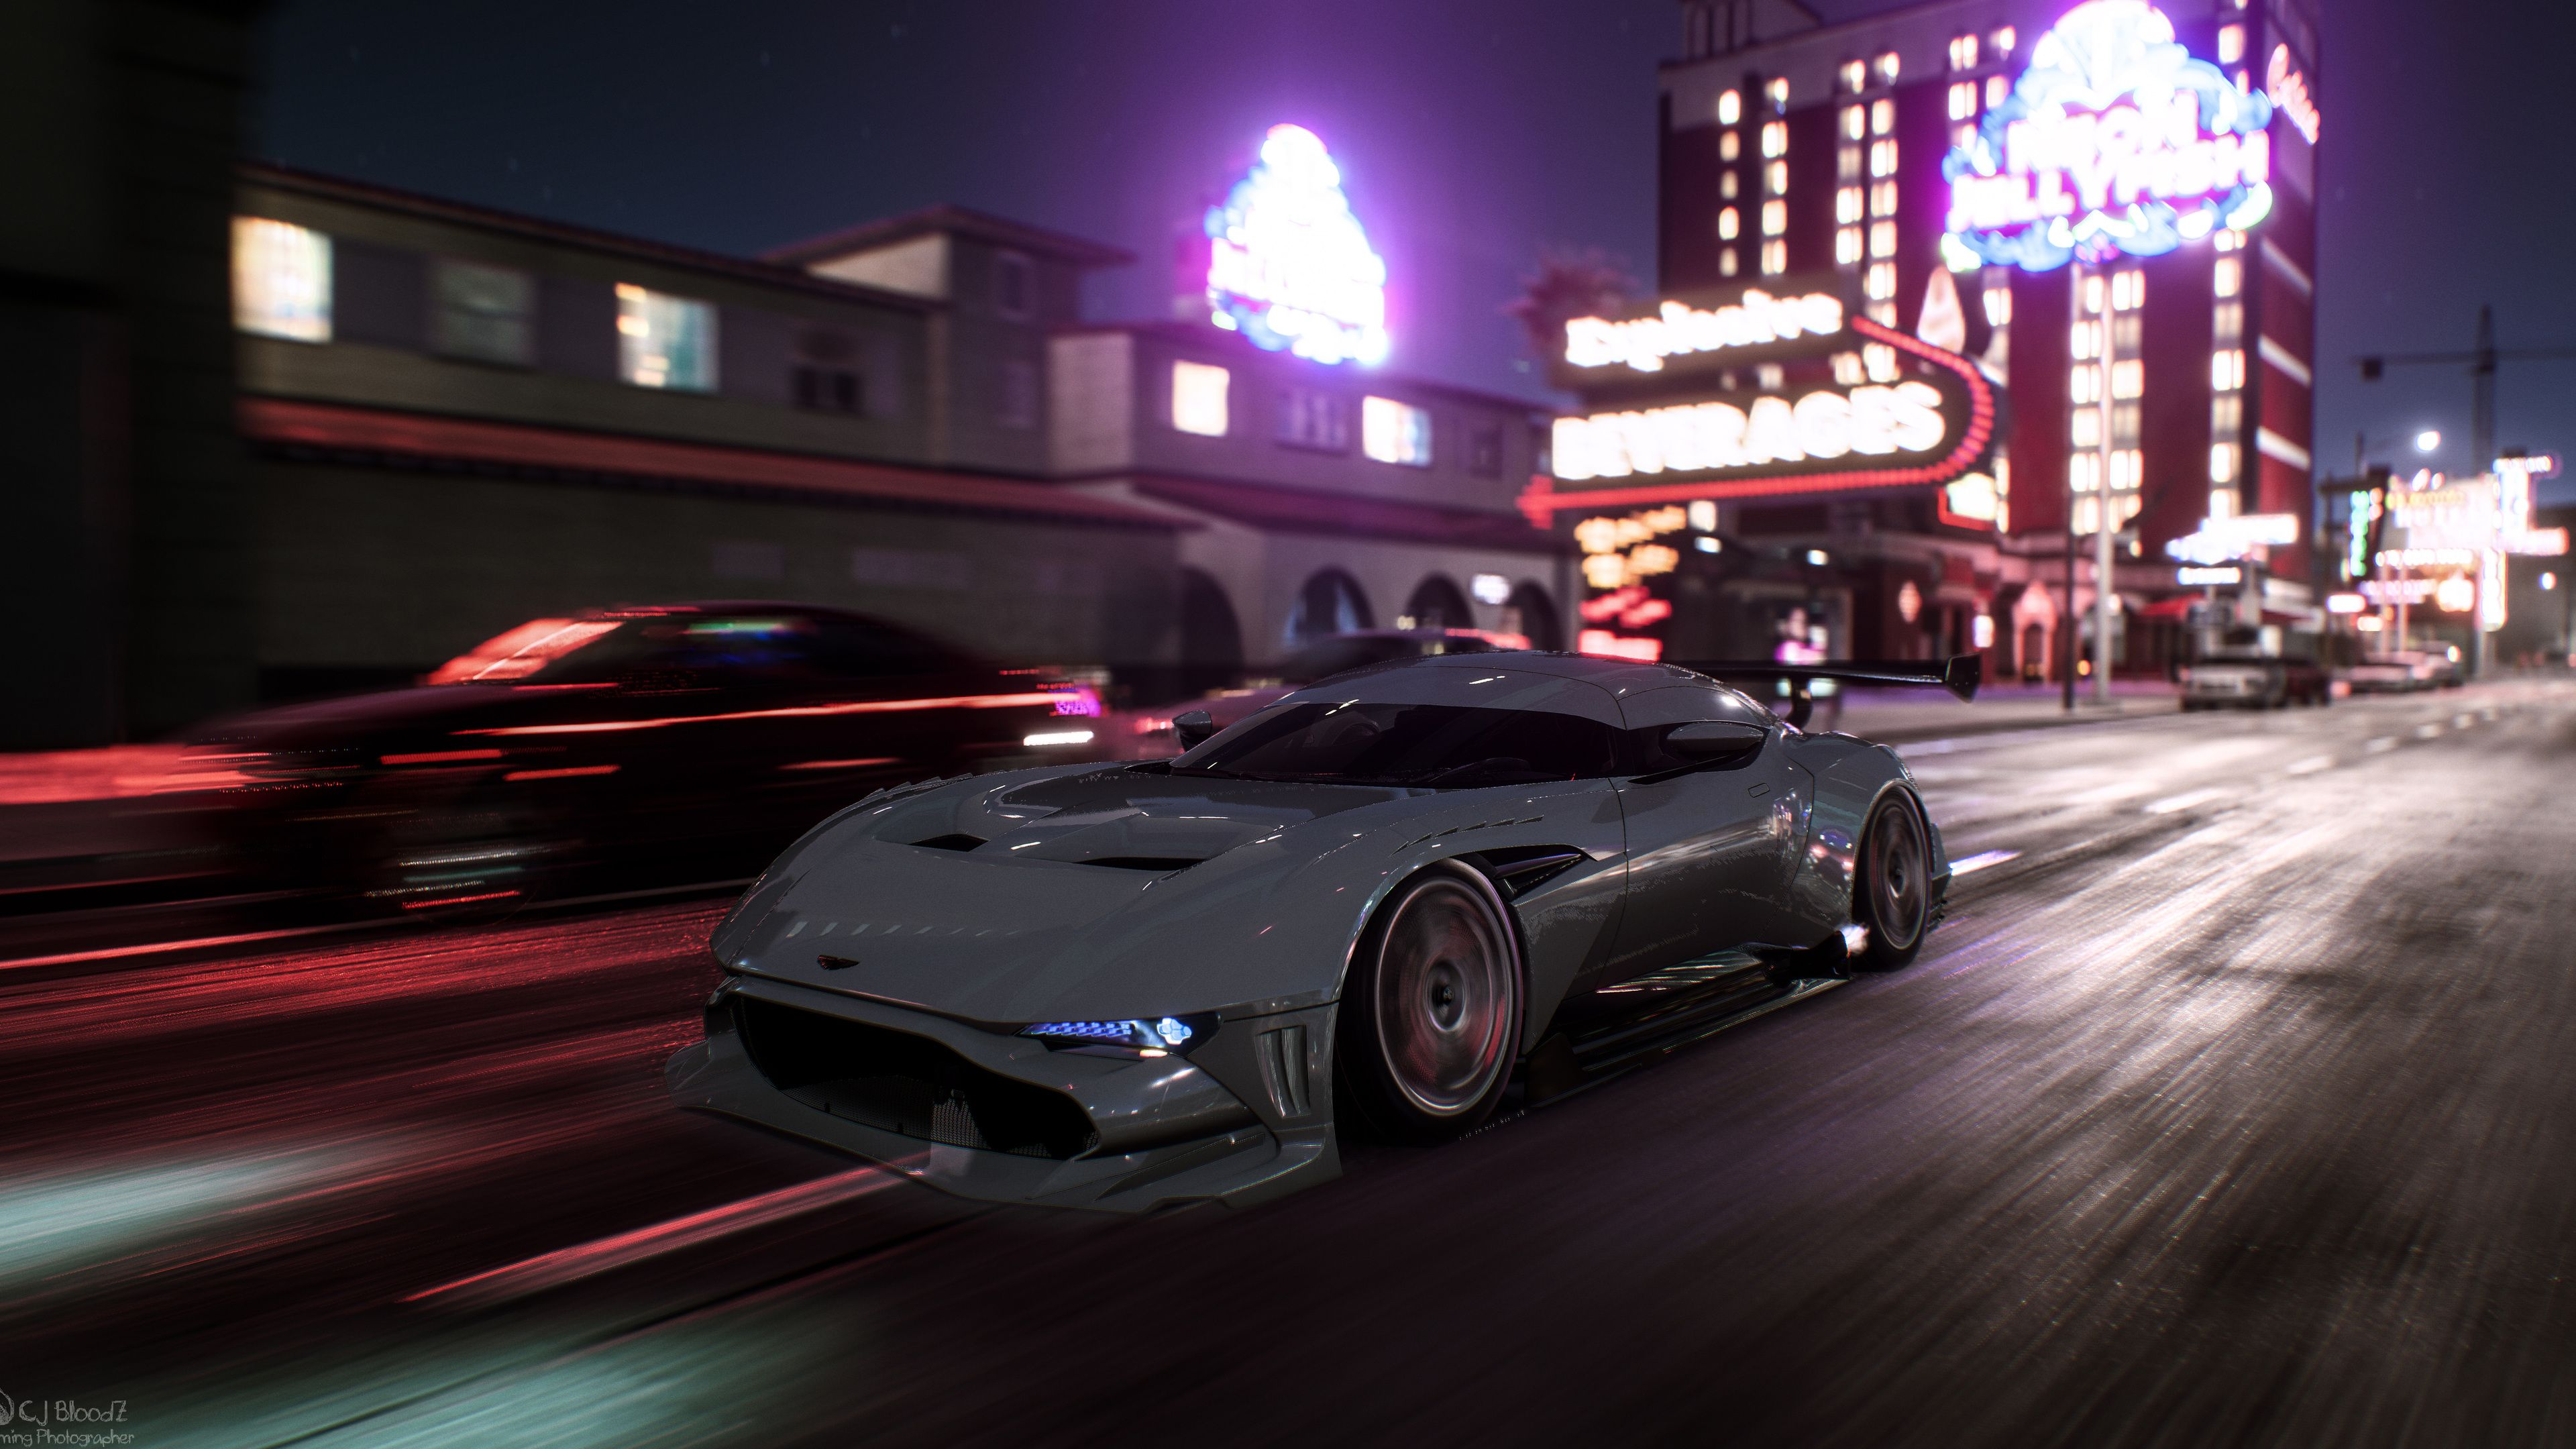 Need For Speed Payback 4k Need For Speed Wallpapers Need For Speed Payback Wallpapers Hd Wallpapers Gam Need For Speed Mobile Phone Design Mobile Phone Logo